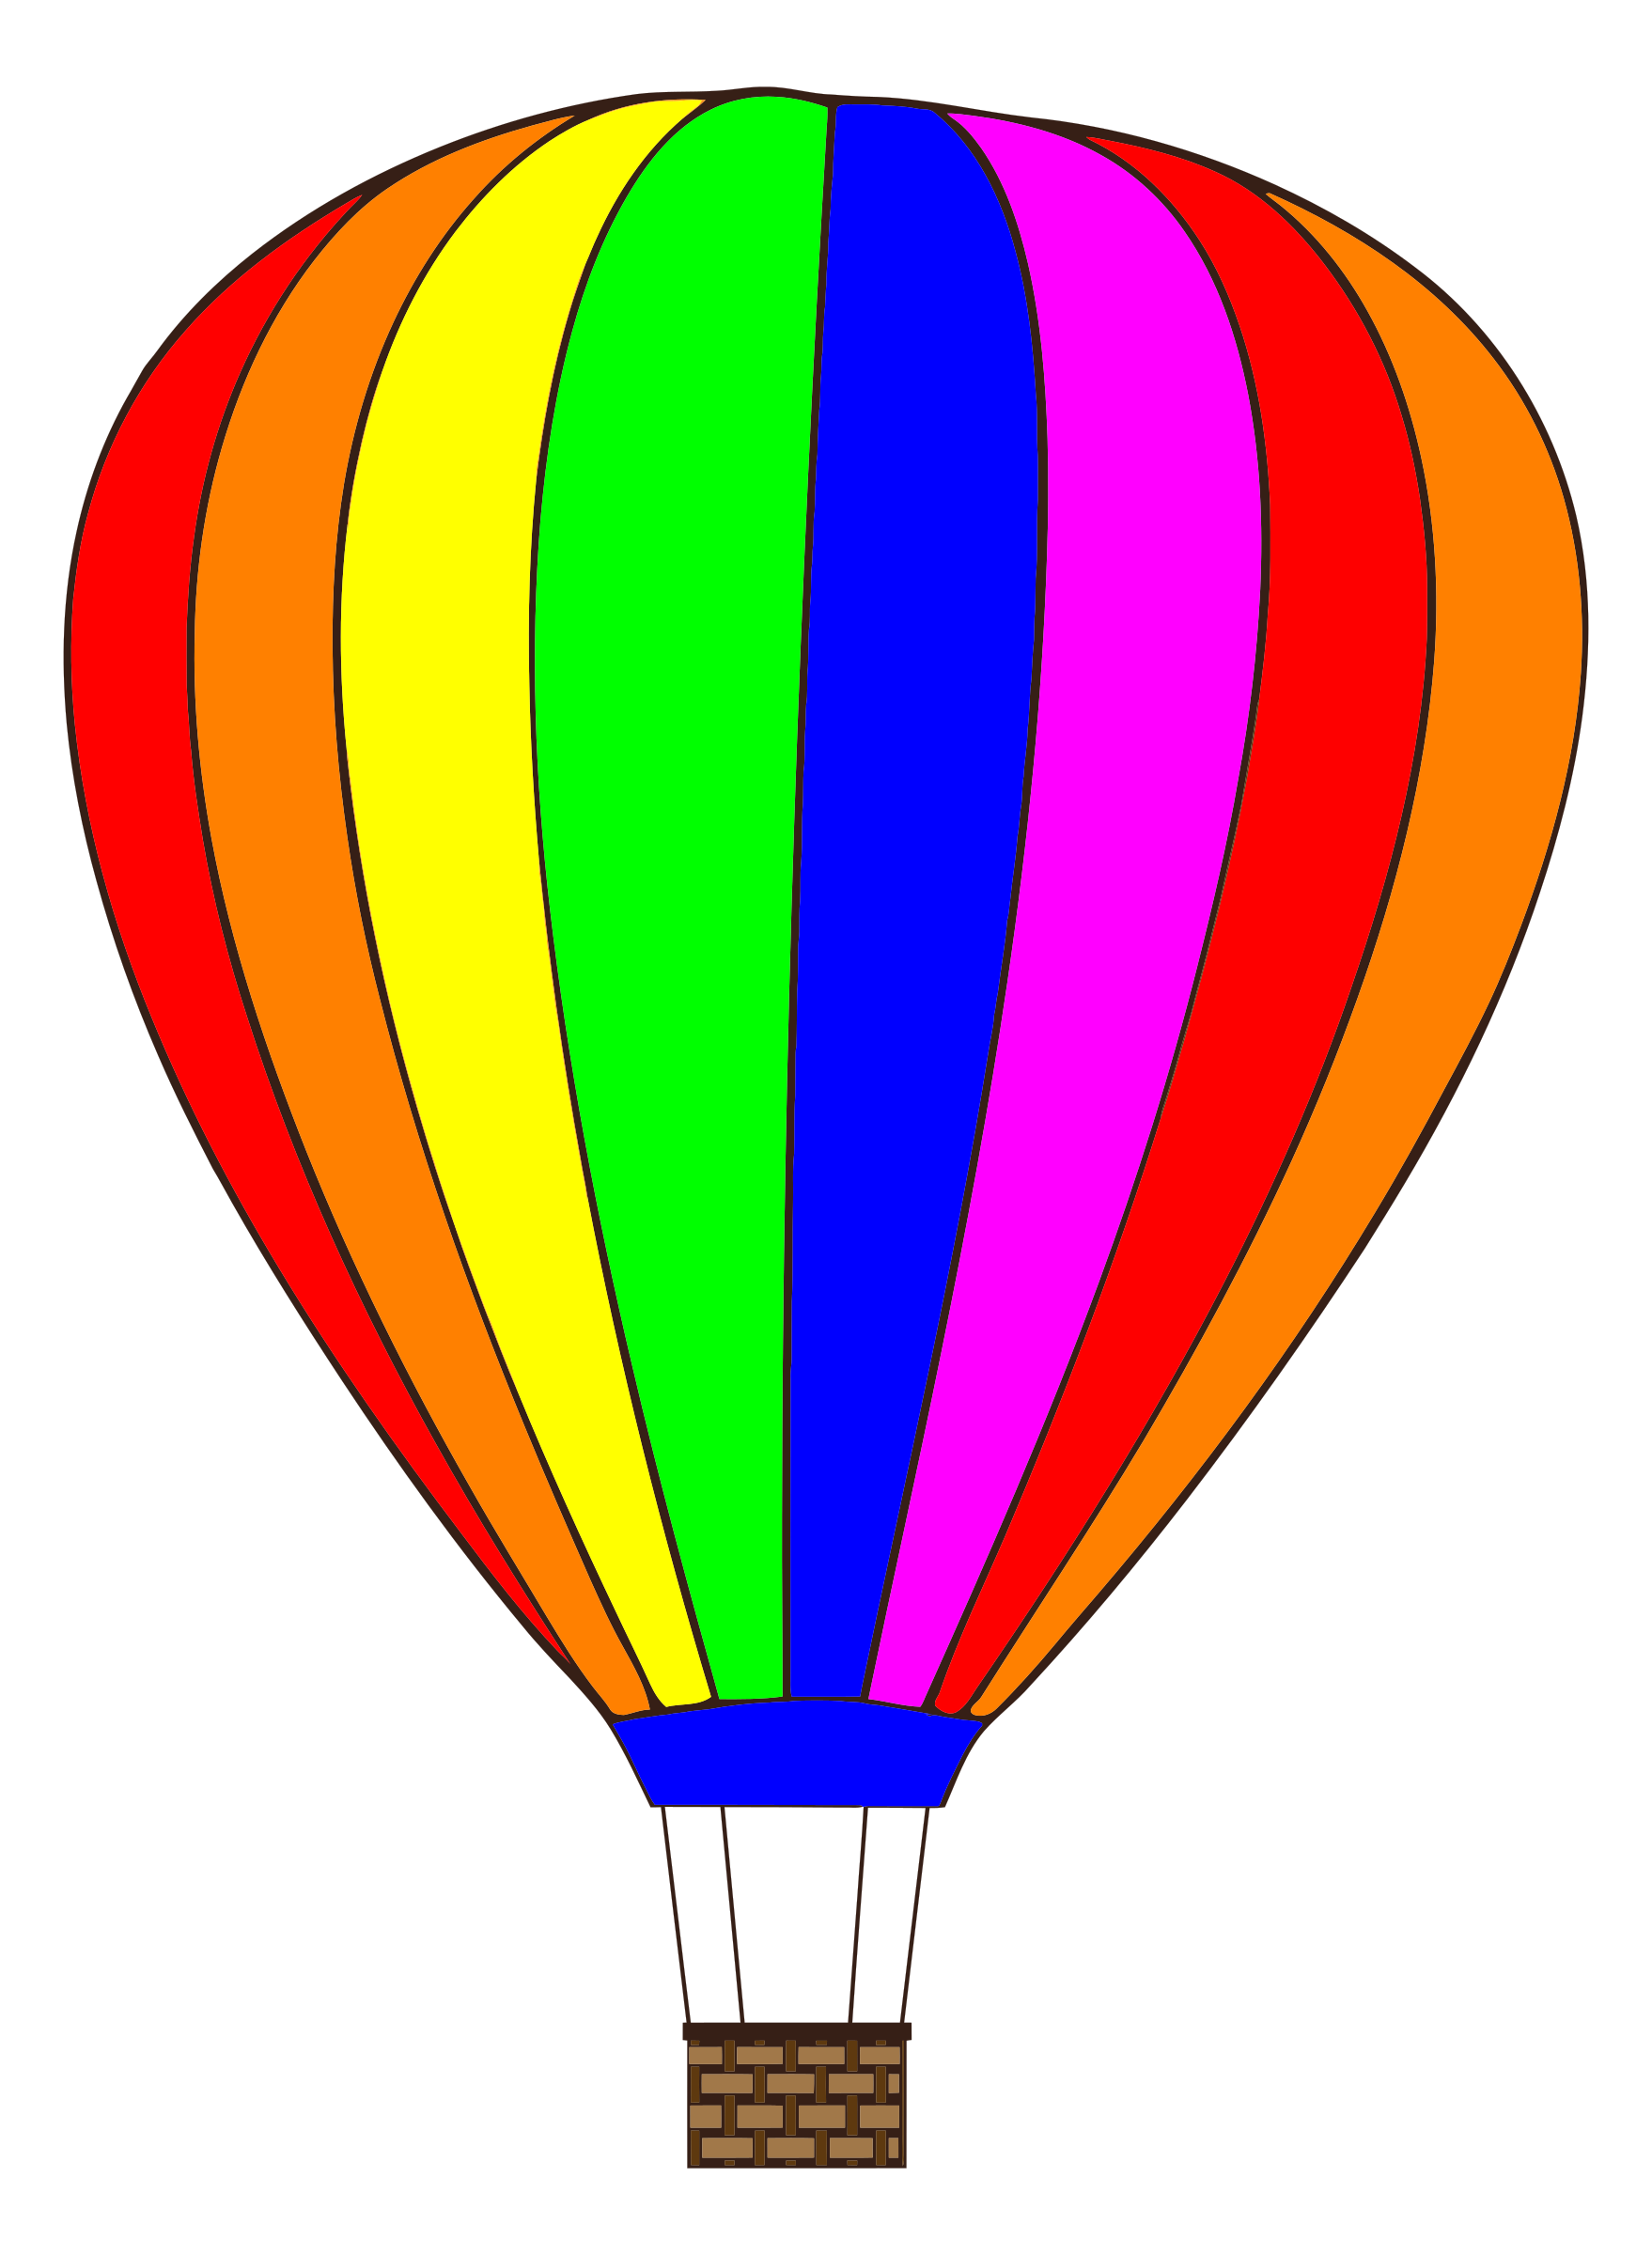 Hot Air Balloon with saturated colors by Manuela.